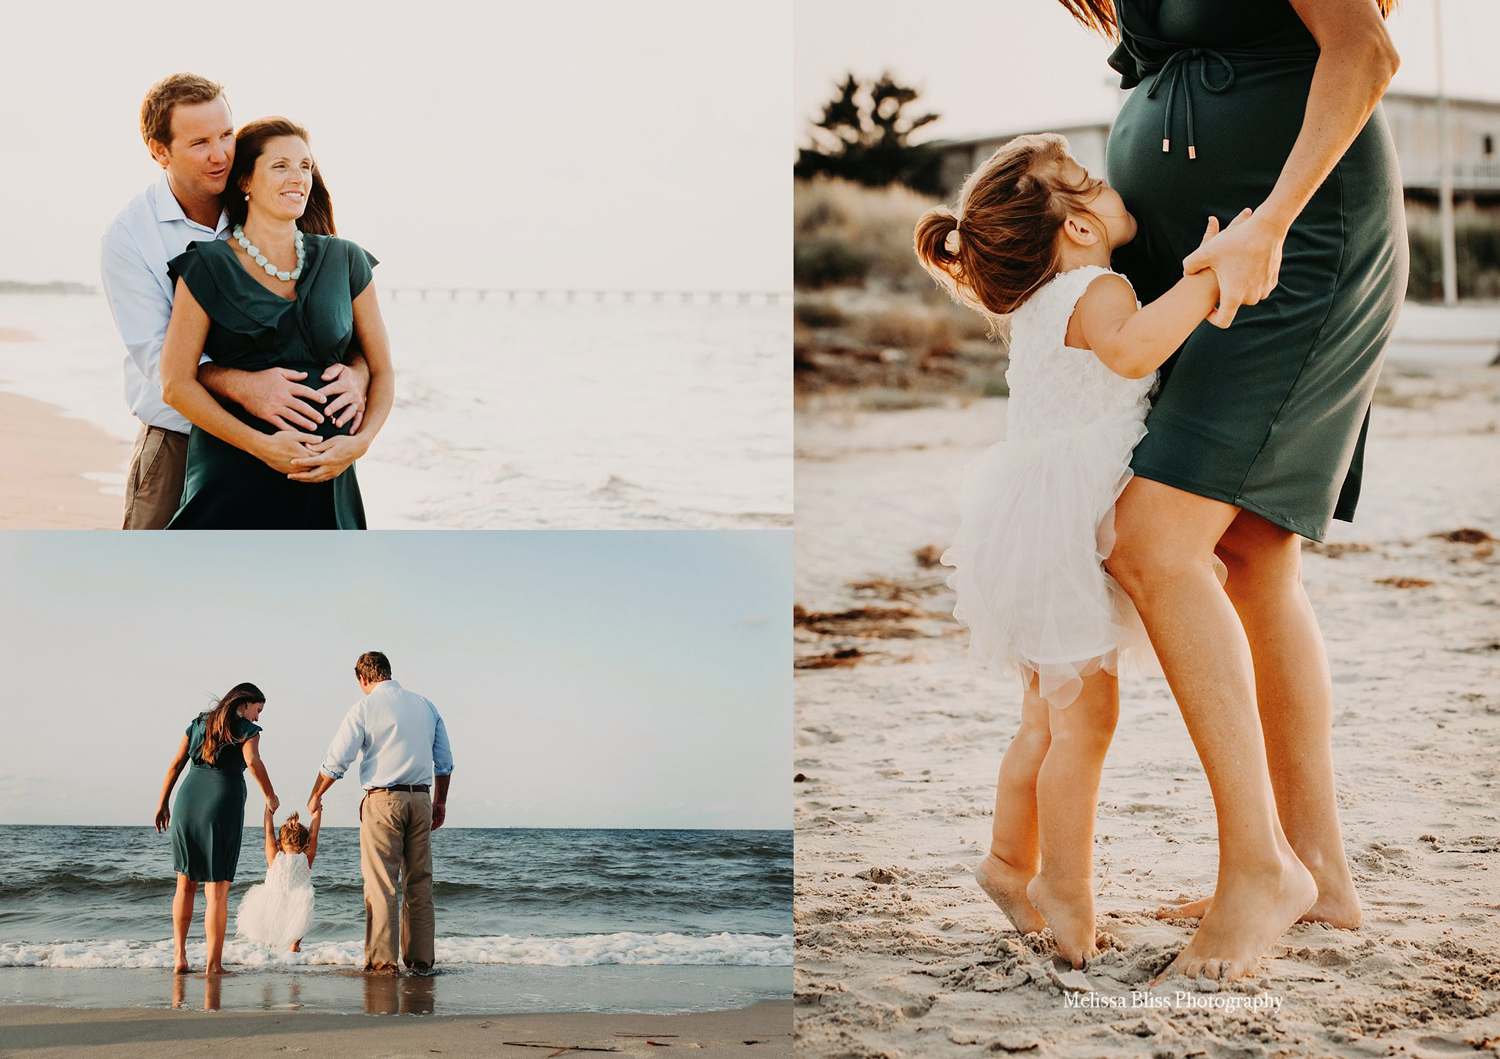 beautiful-candid-maternity-session-at-chicks-beach-virginia-beach-norfolk-maternity-photographer-melissa-bliss-photography-hampton-roads.jpg